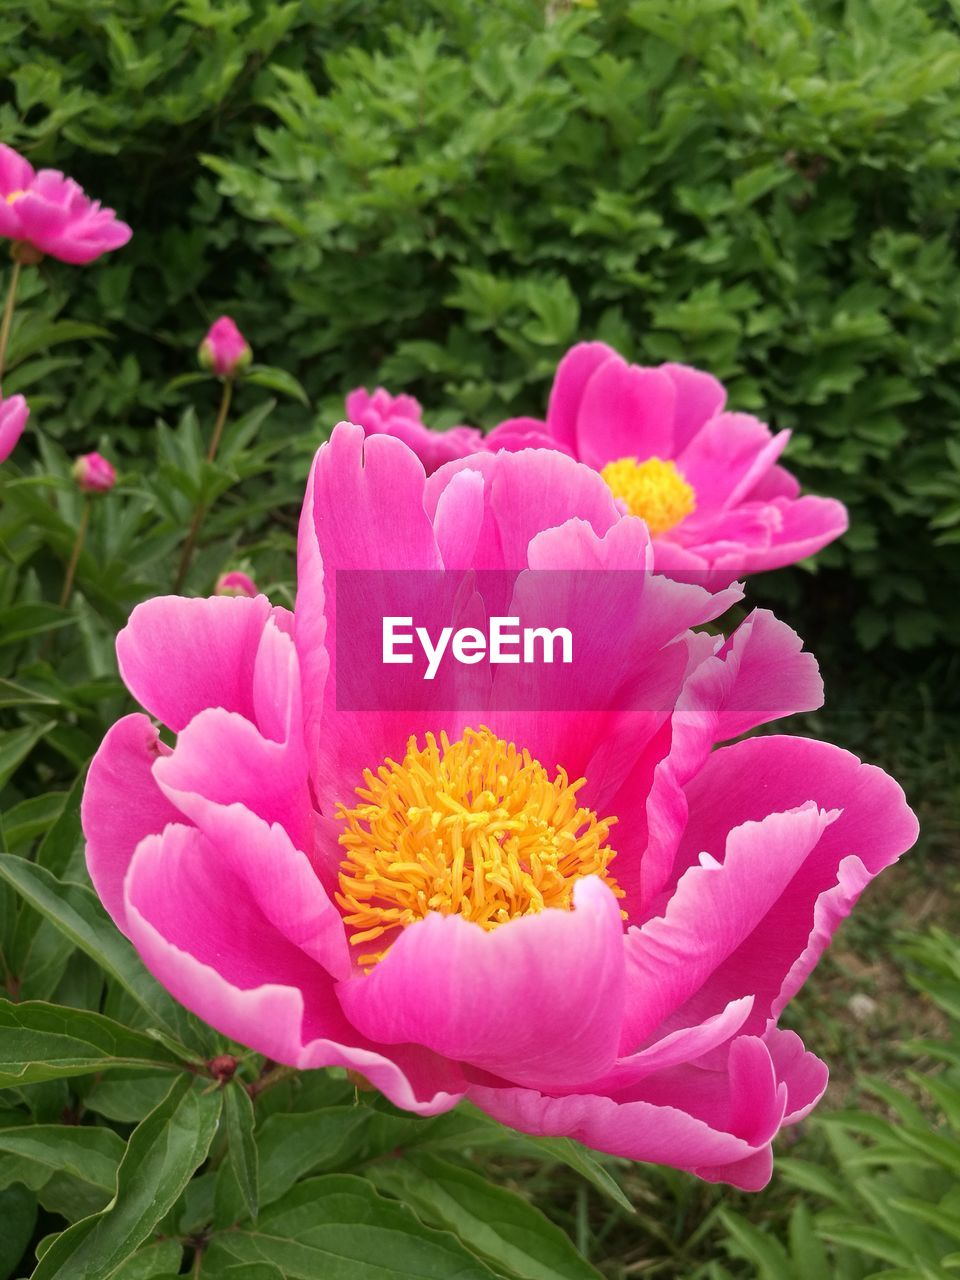 flower, pink color, petal, nature, growth, beauty in nature, plant, freshness, flower head, outdoors, no people, fragility, blooming, day, close-up, leaf, zinnia